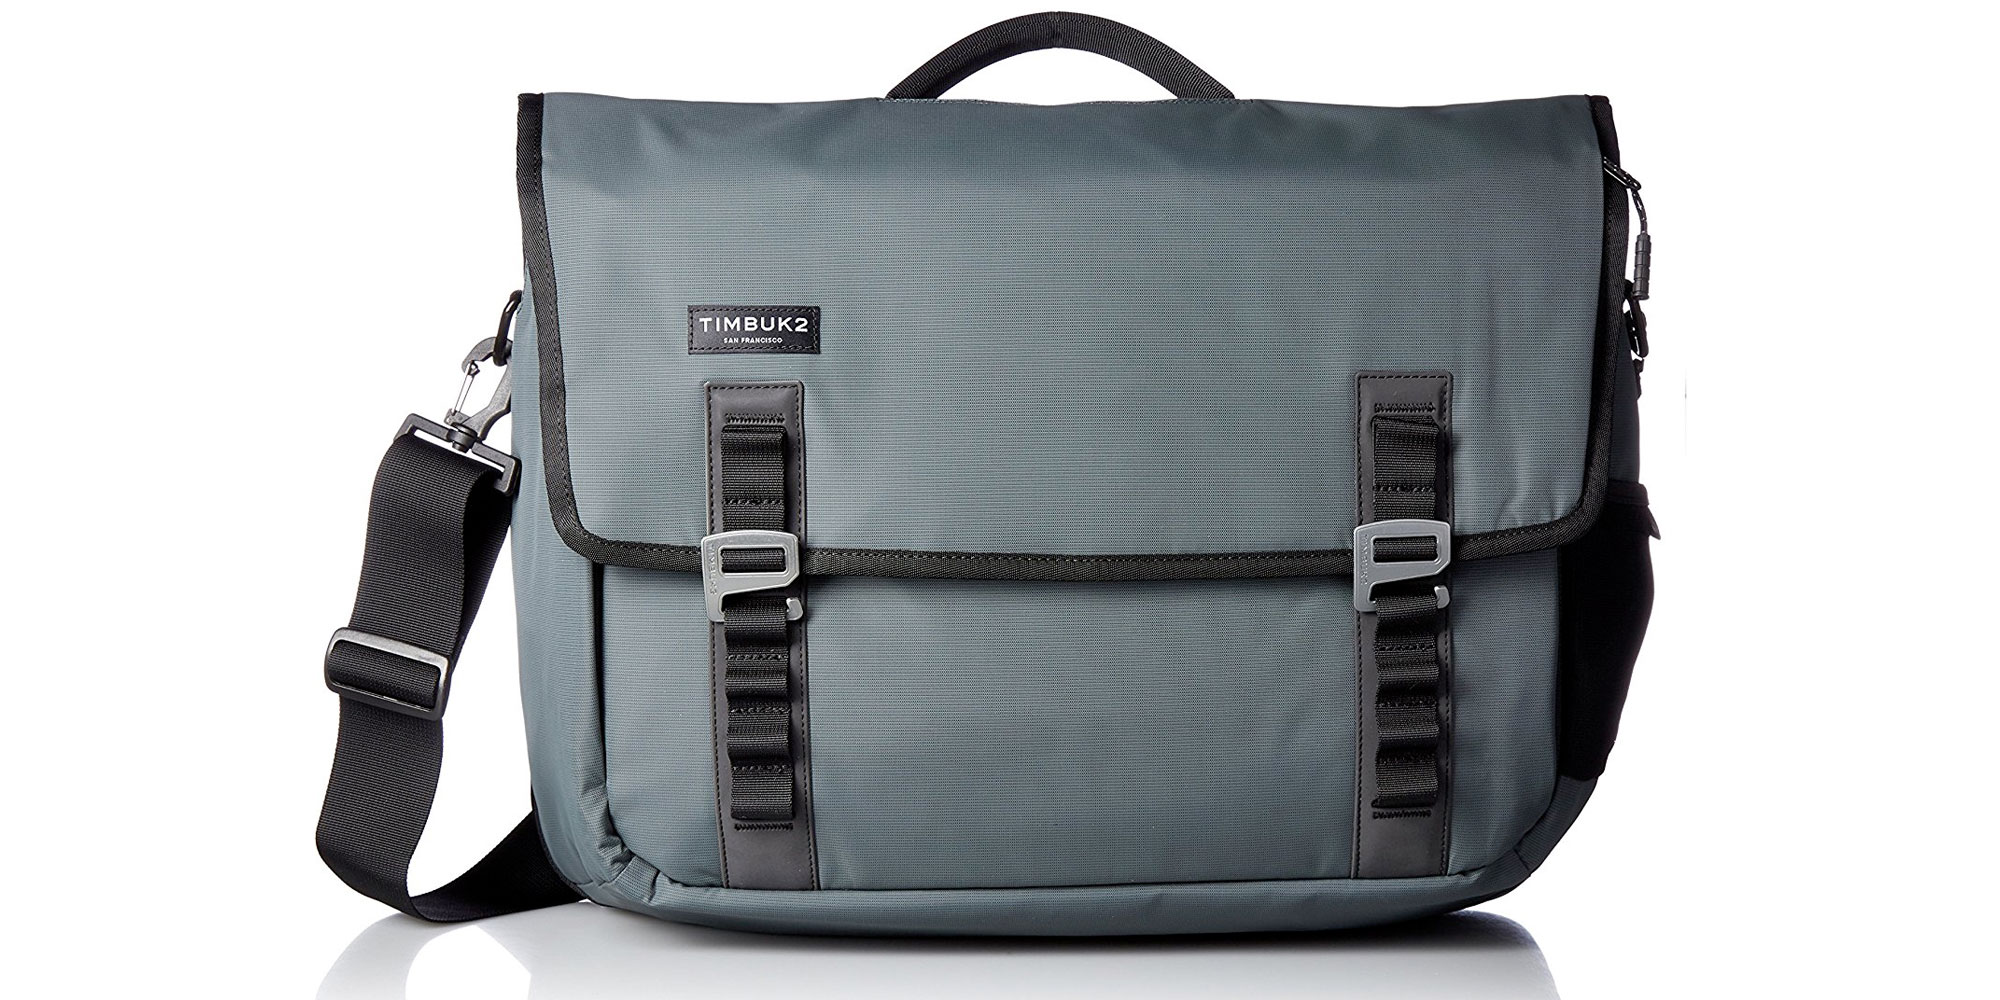 Carry your 15″ MacBook Pro in style w/ Timbuk2 Command Messenger Bag: $70 (Reg. $150)